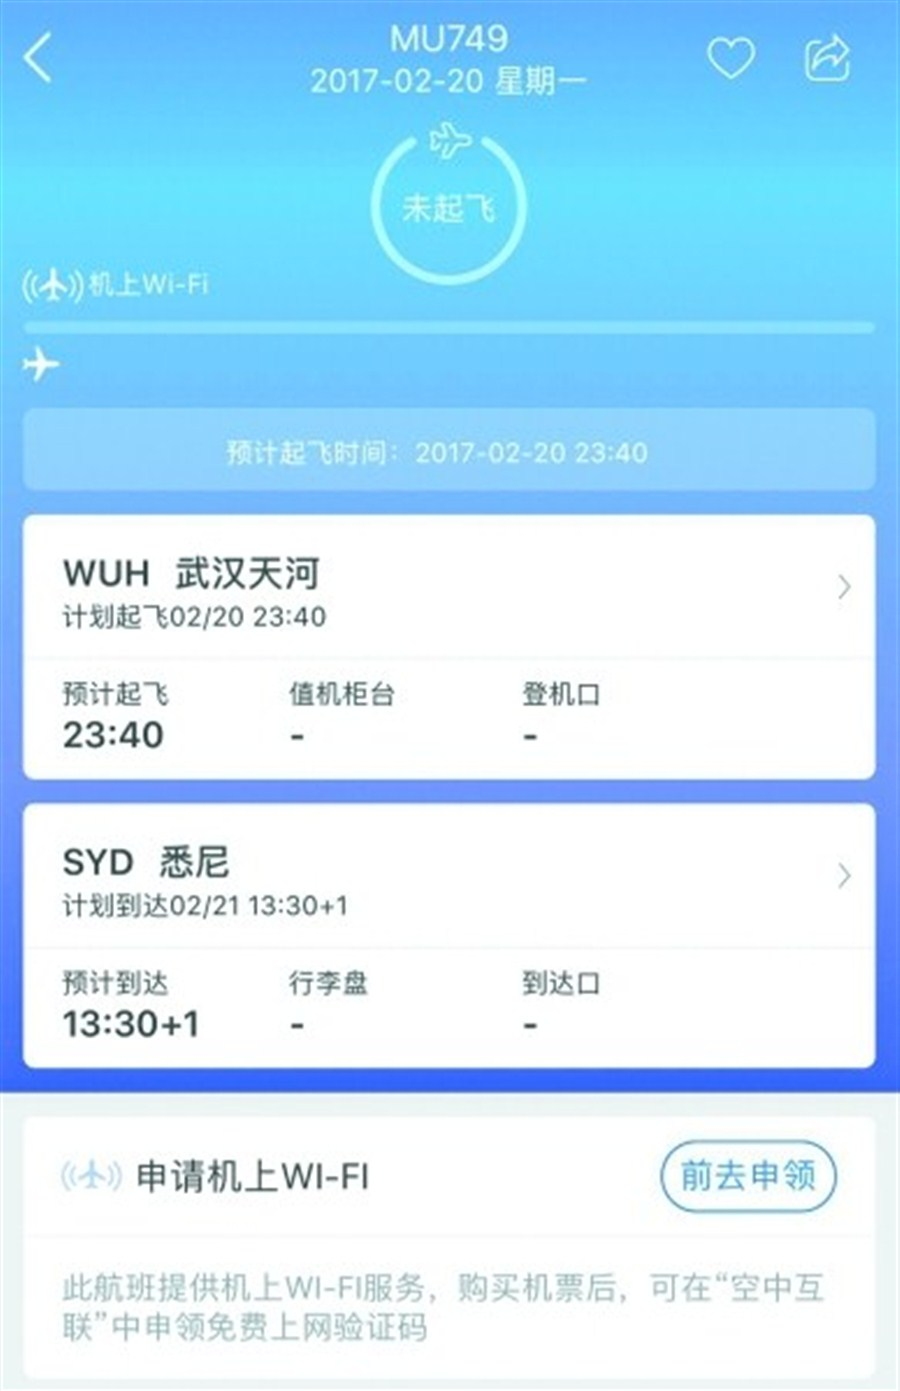 Wuhan gets first WiFi flight